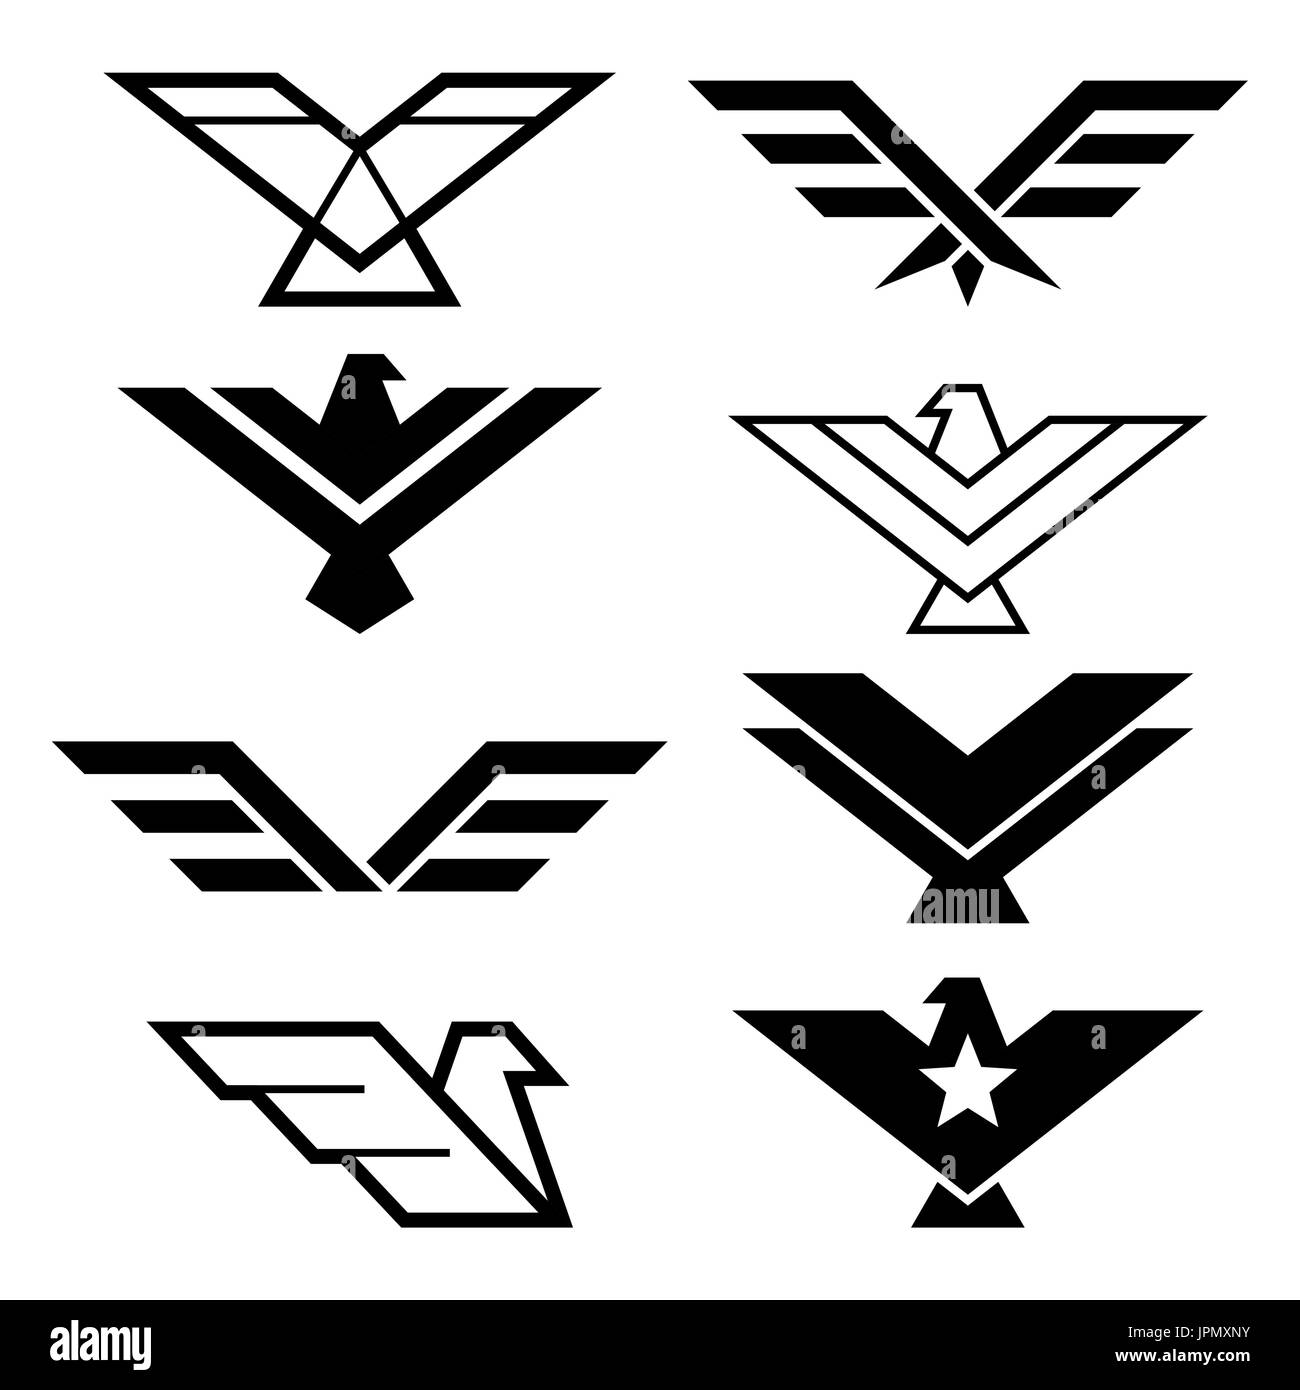 eagle geometric design eagle s wings vector icons set eagles stock vector image art alamy https www alamy com eagle geometric design eagles wings vector icons set eagles graphic image151665415 html